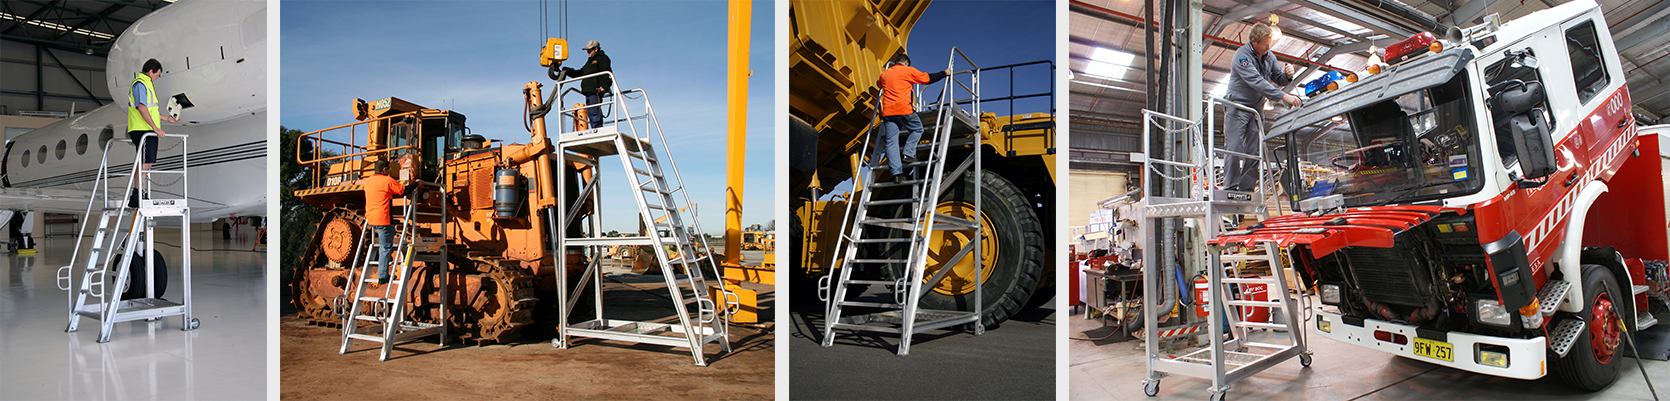 Steprite Access Platform Across Use in Various Industries